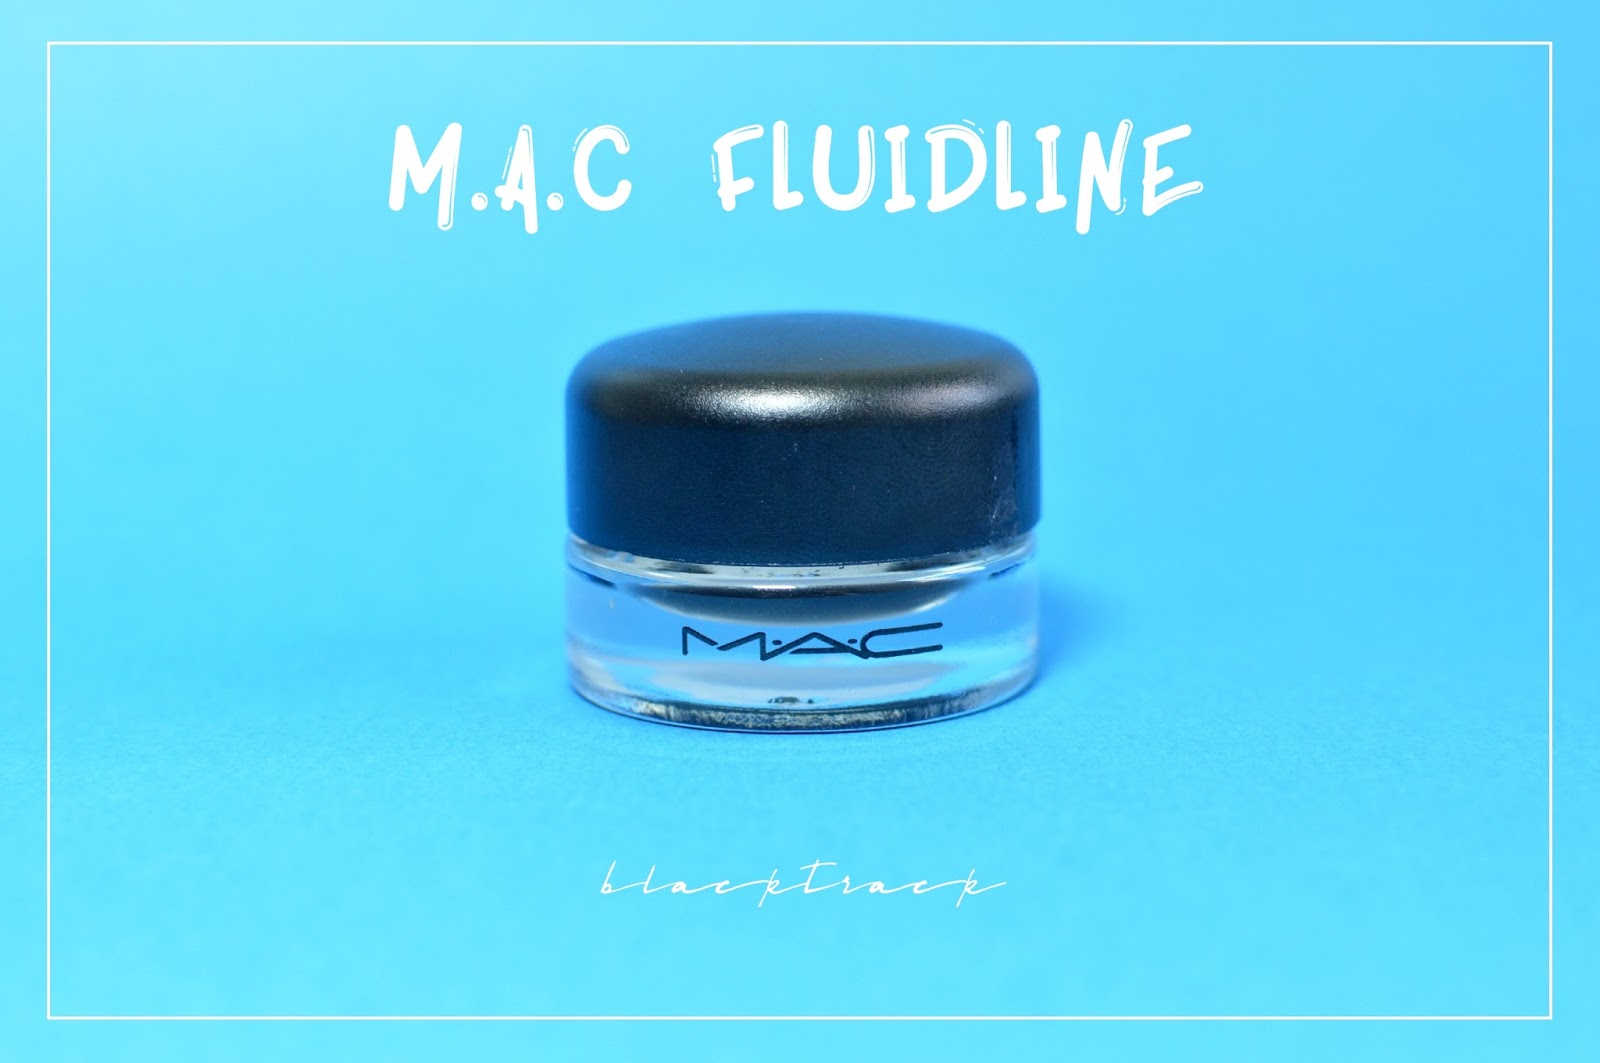 MAC BLACKTRACK FLUIDLINE, MAC BLACKTRACK FLUIDLINE REVIEW, MAC BLACKTRACK FLUIDLINE SWATCH